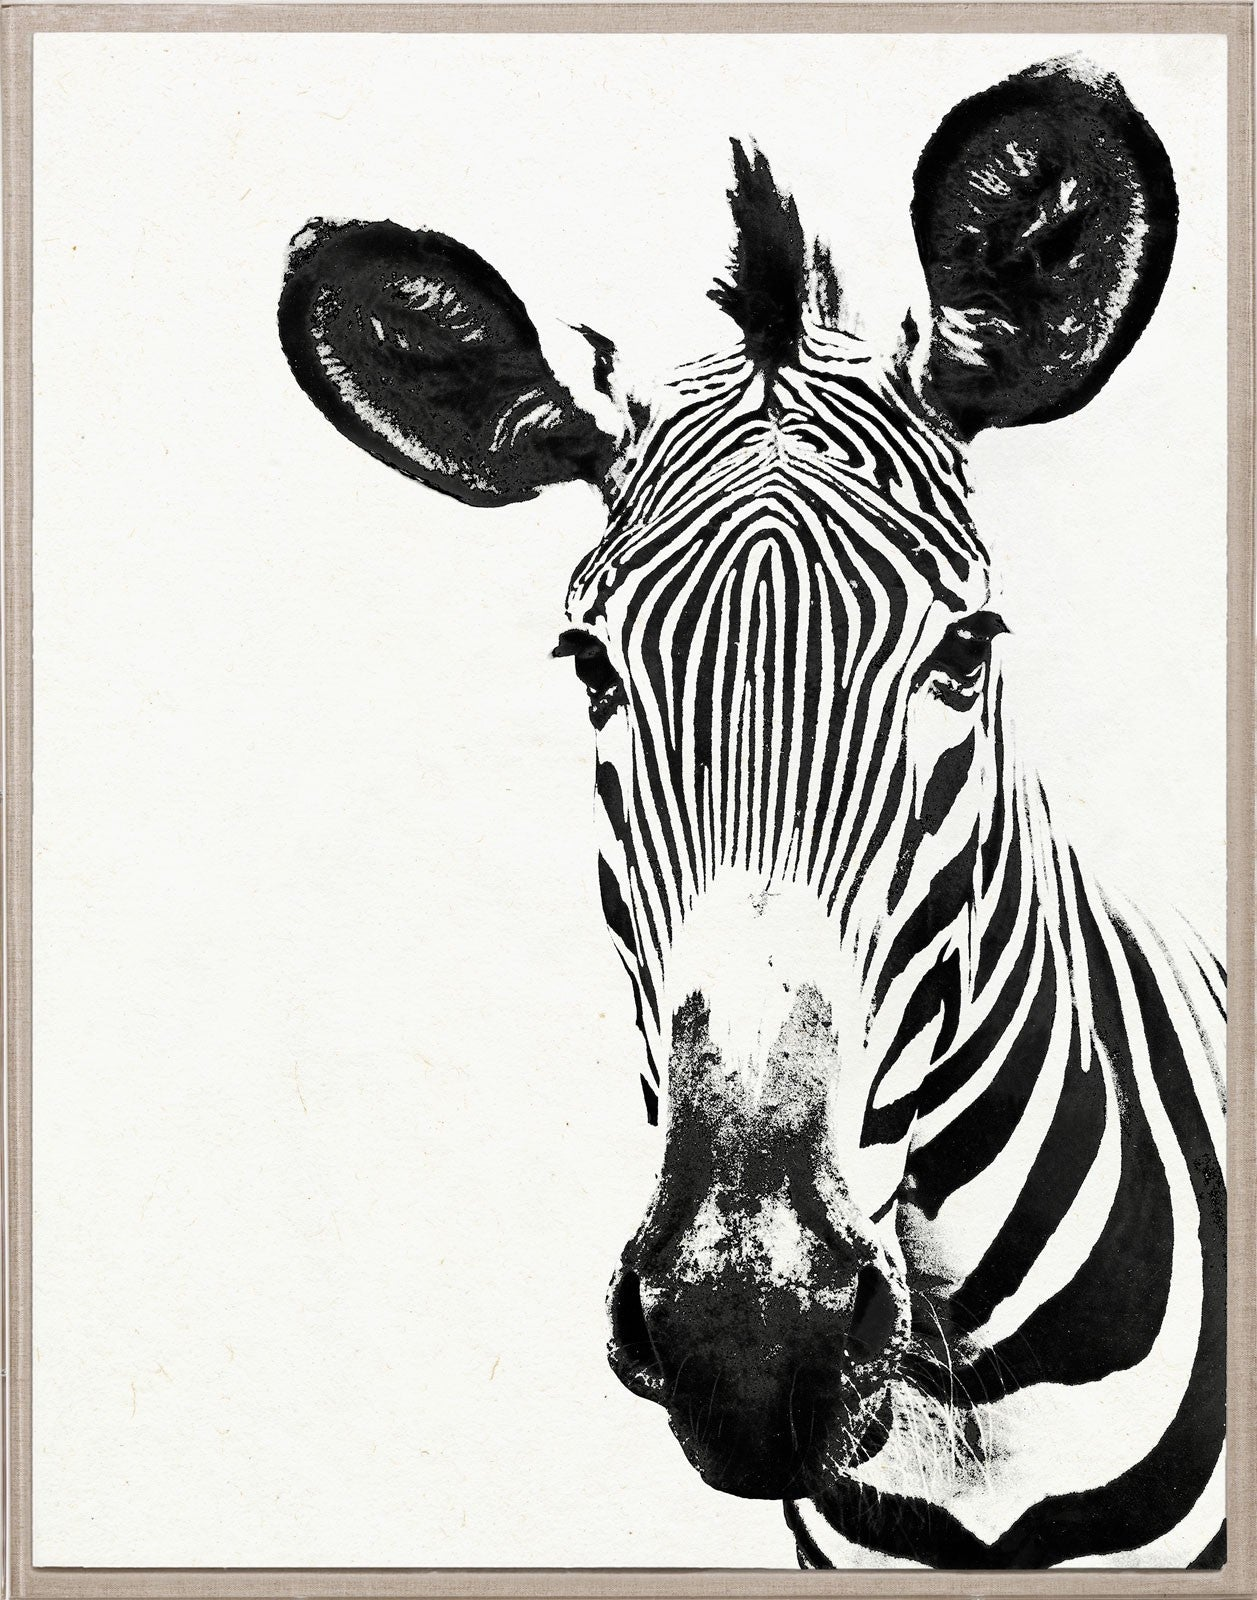 Natural Curiosities Tylinek Zebra Artwork